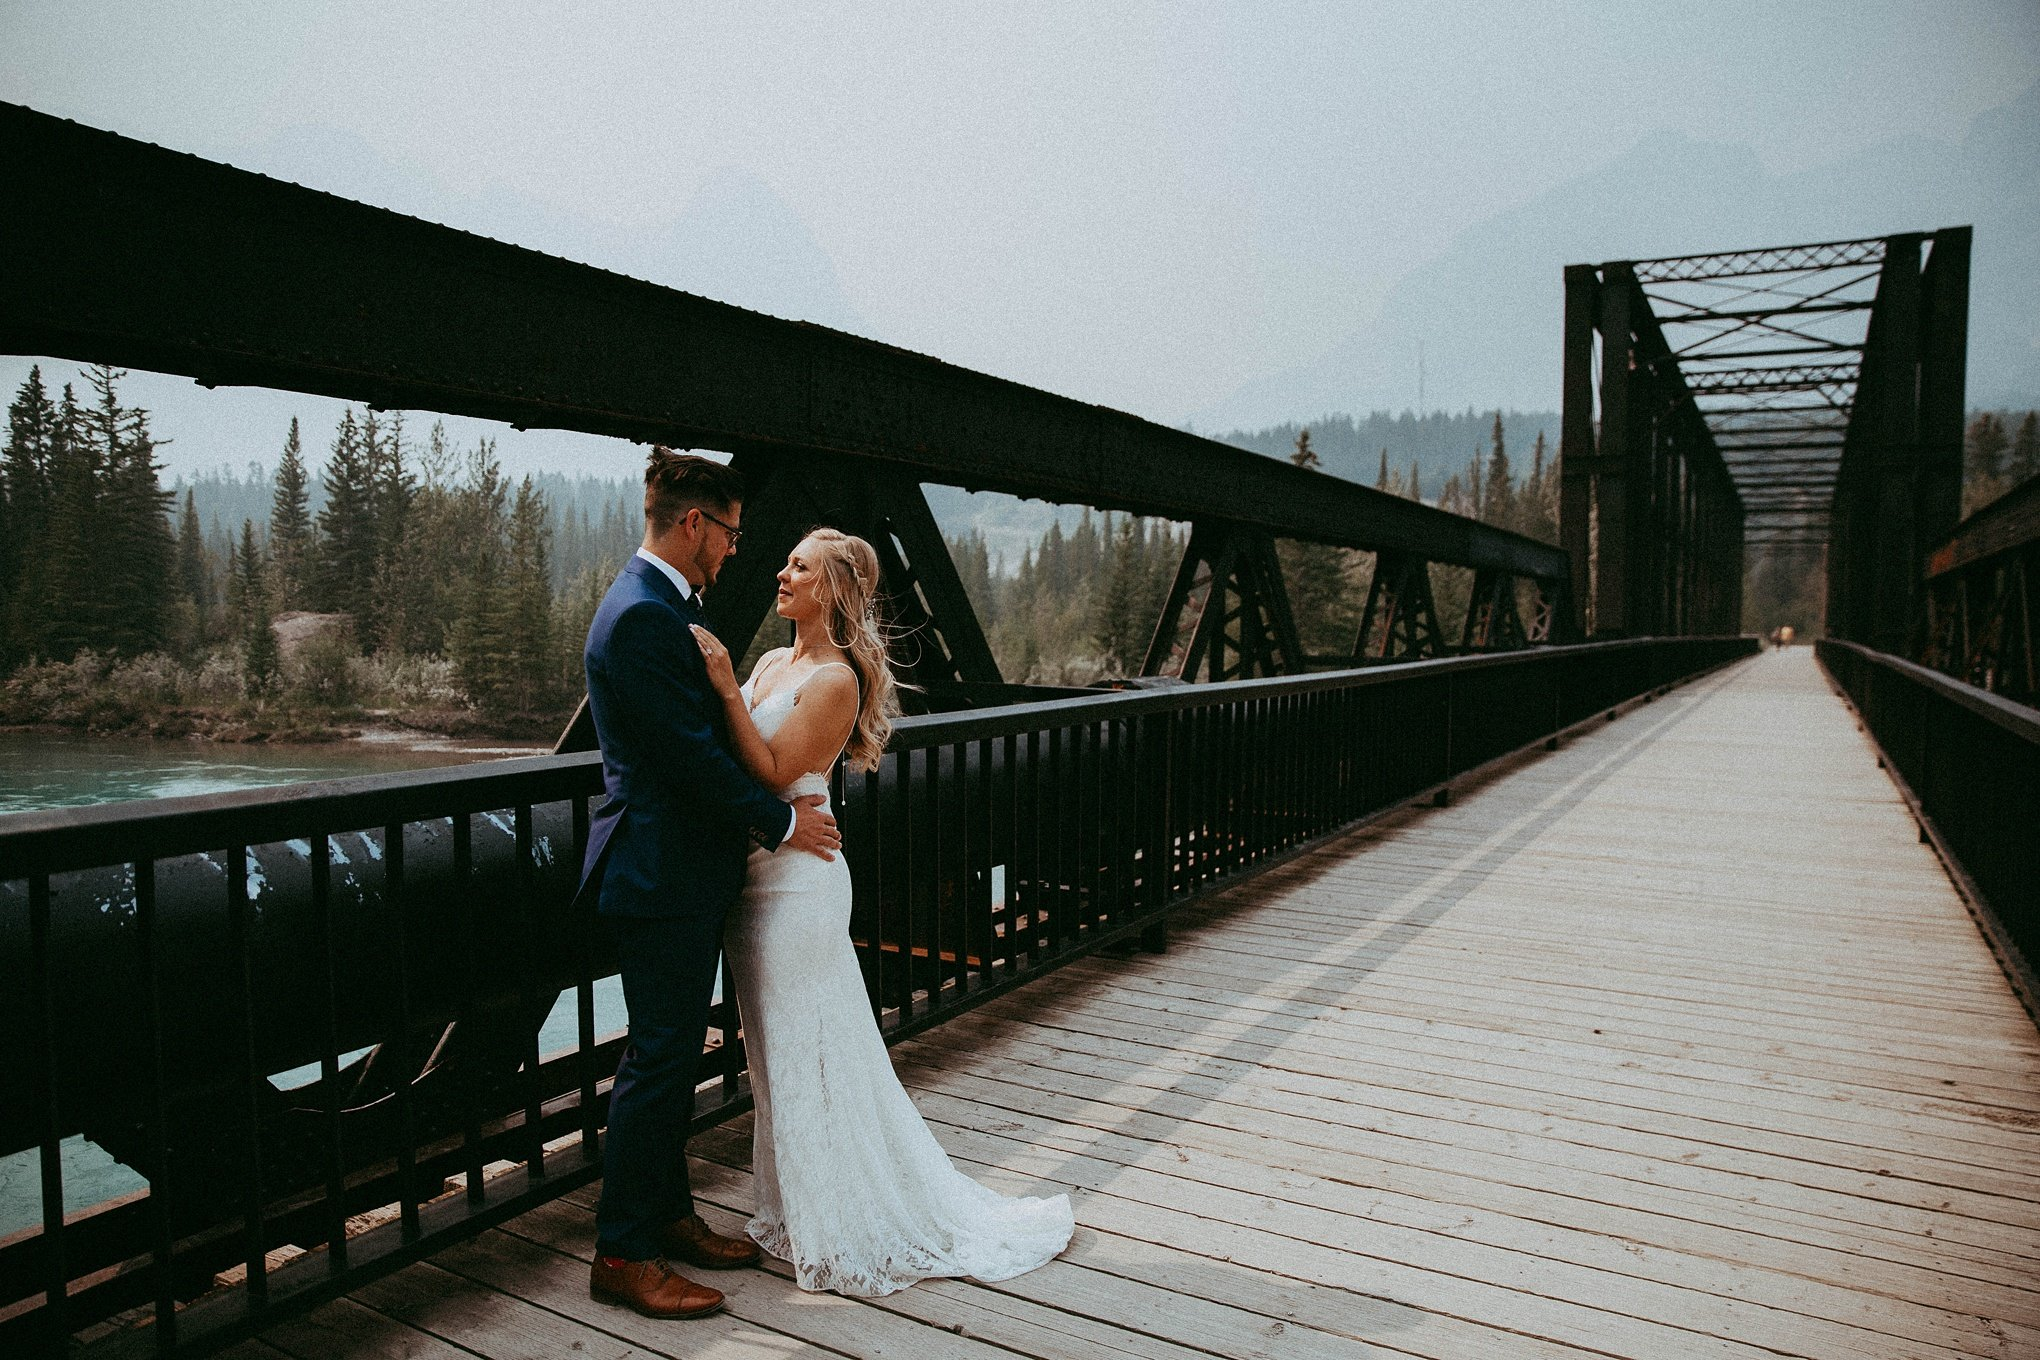 camore train bridge, canmore engine bridge, camore wedding photographers